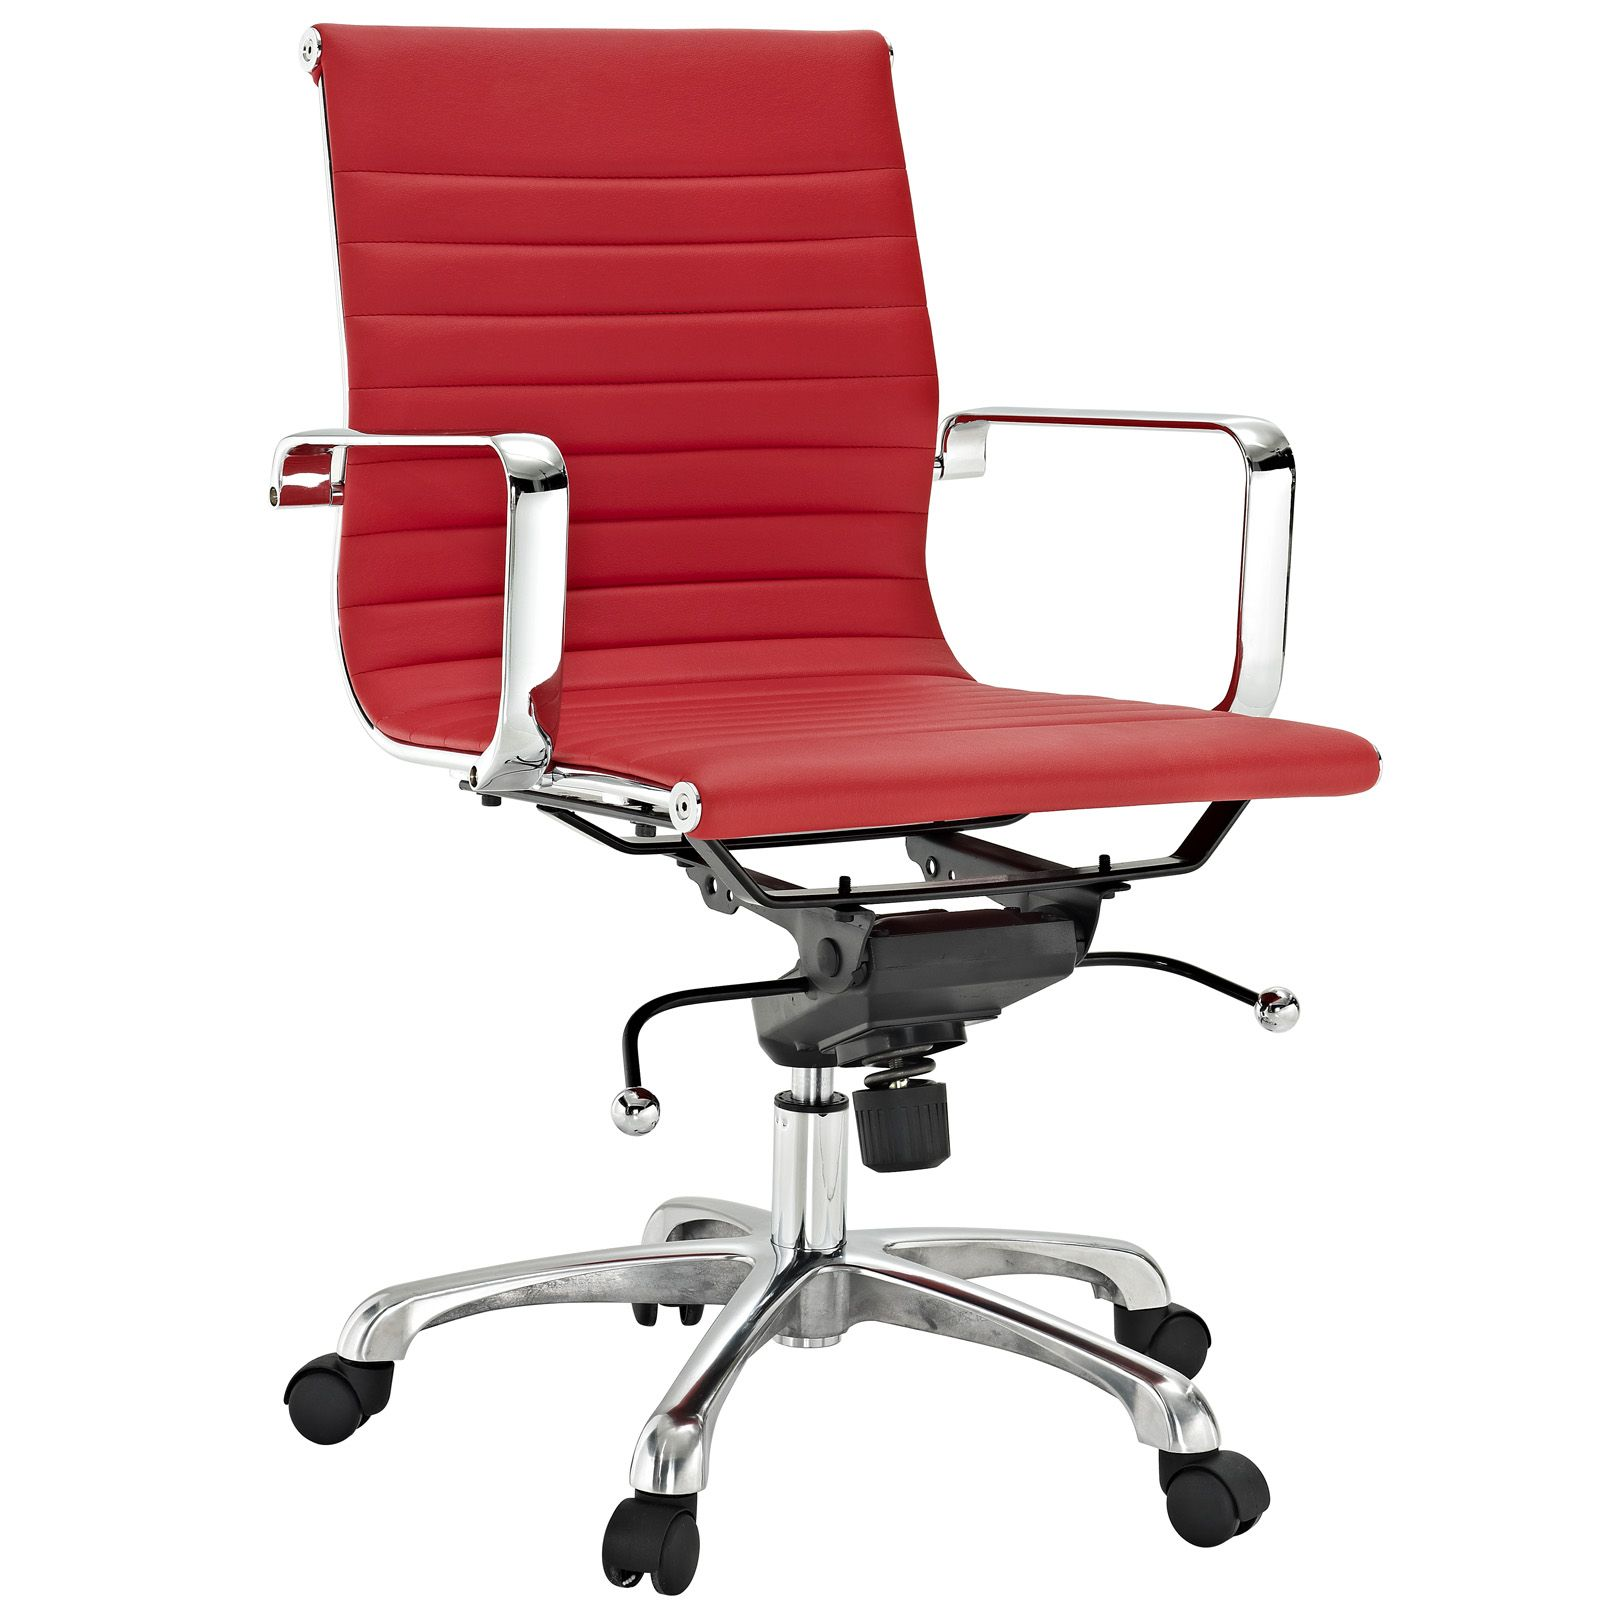 Ribbed Mid Back Chair in Red Vinyl